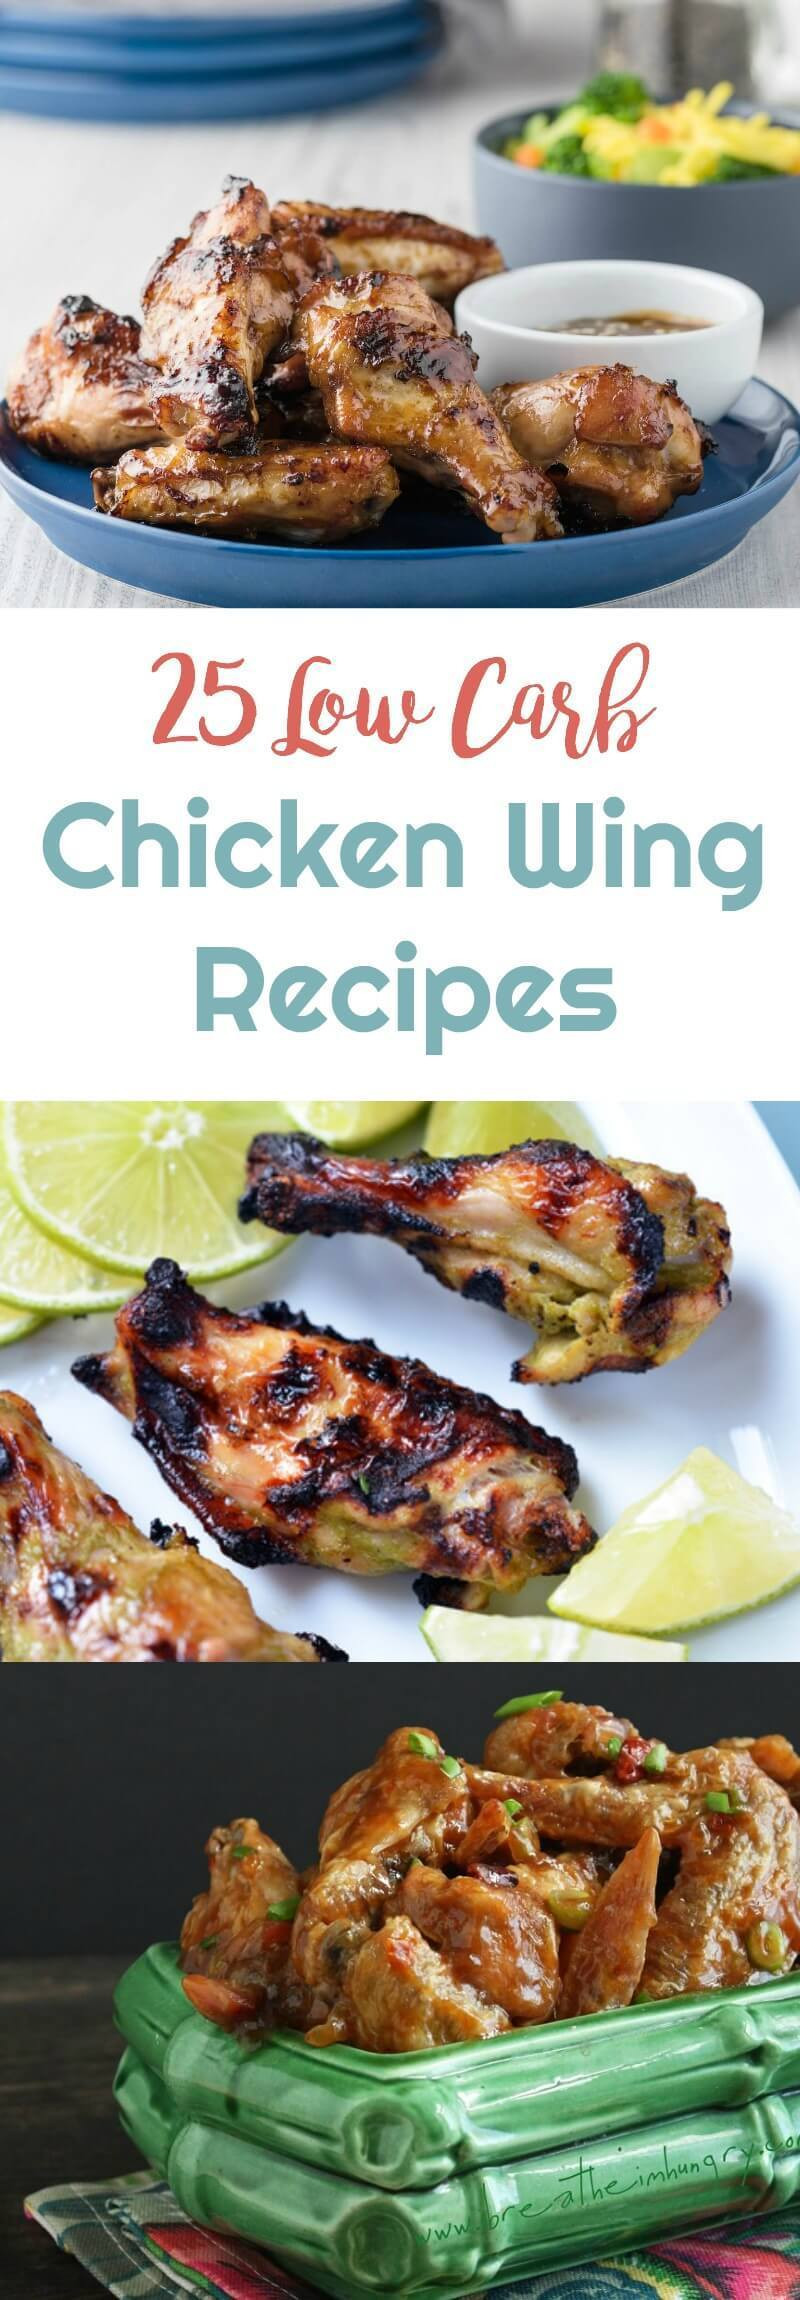 How Many Carbs In Chicken Wings  25 Low Carb Chicken Wing Recipes